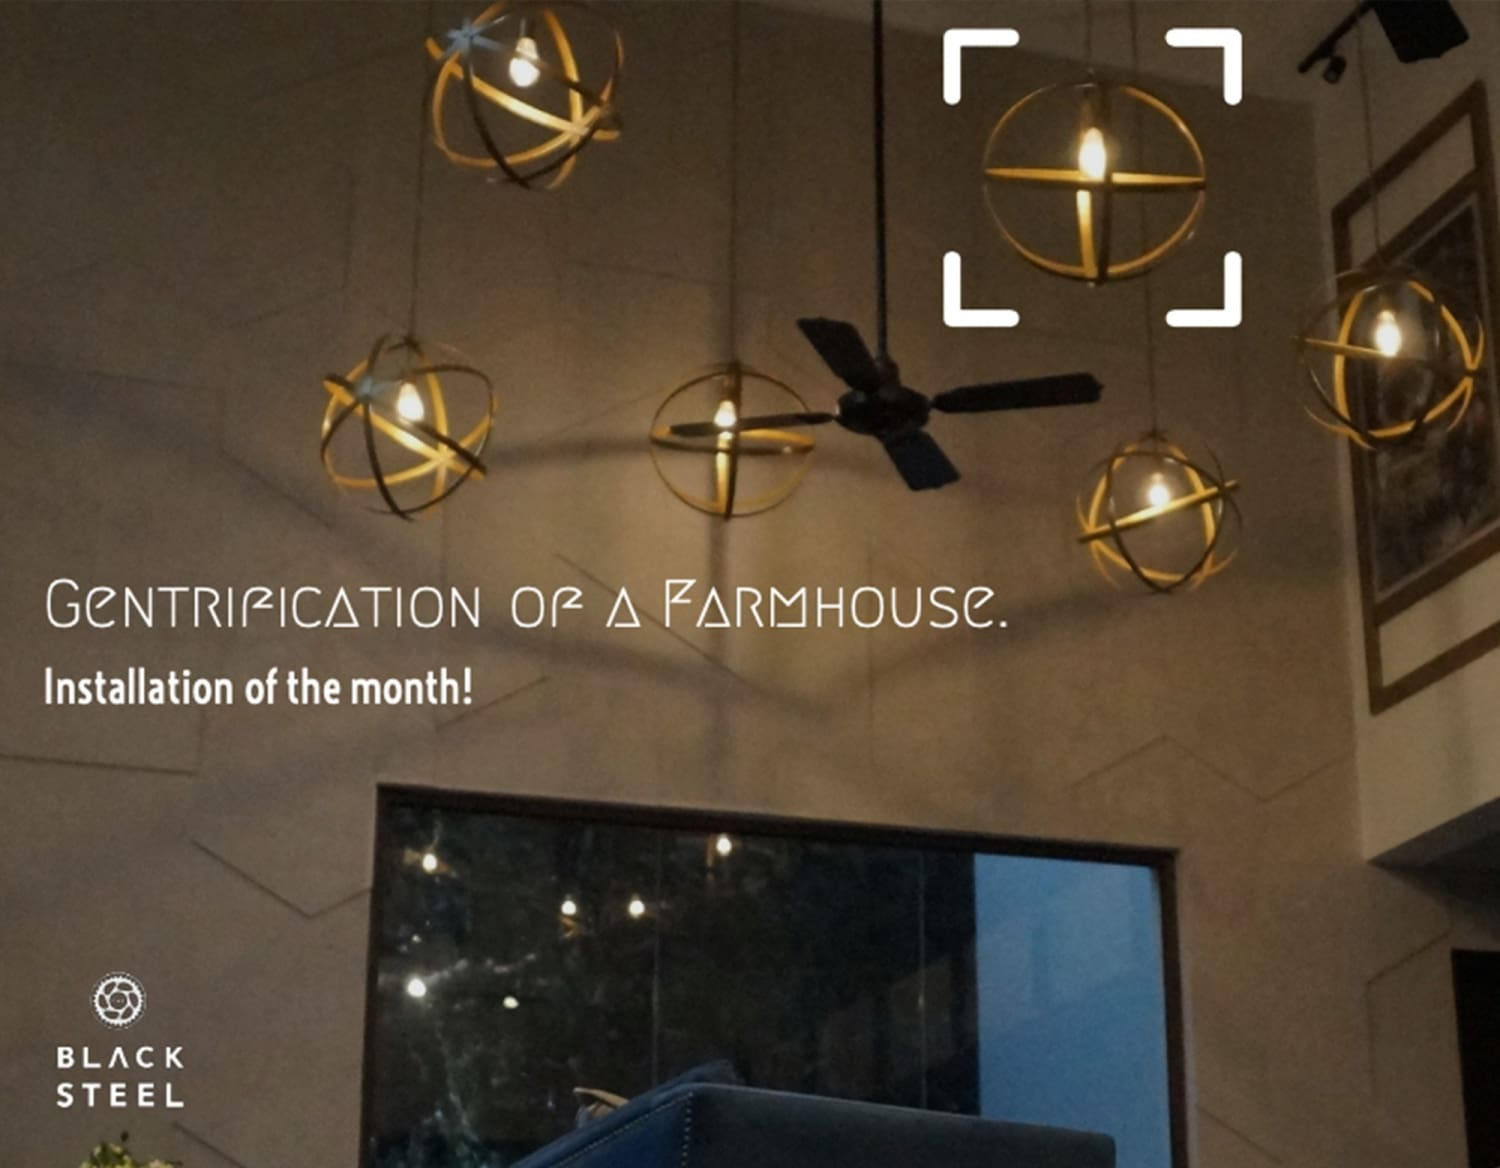 Installation of the Month: Gentrification of a Farmhouse into an Irradiate Expanse